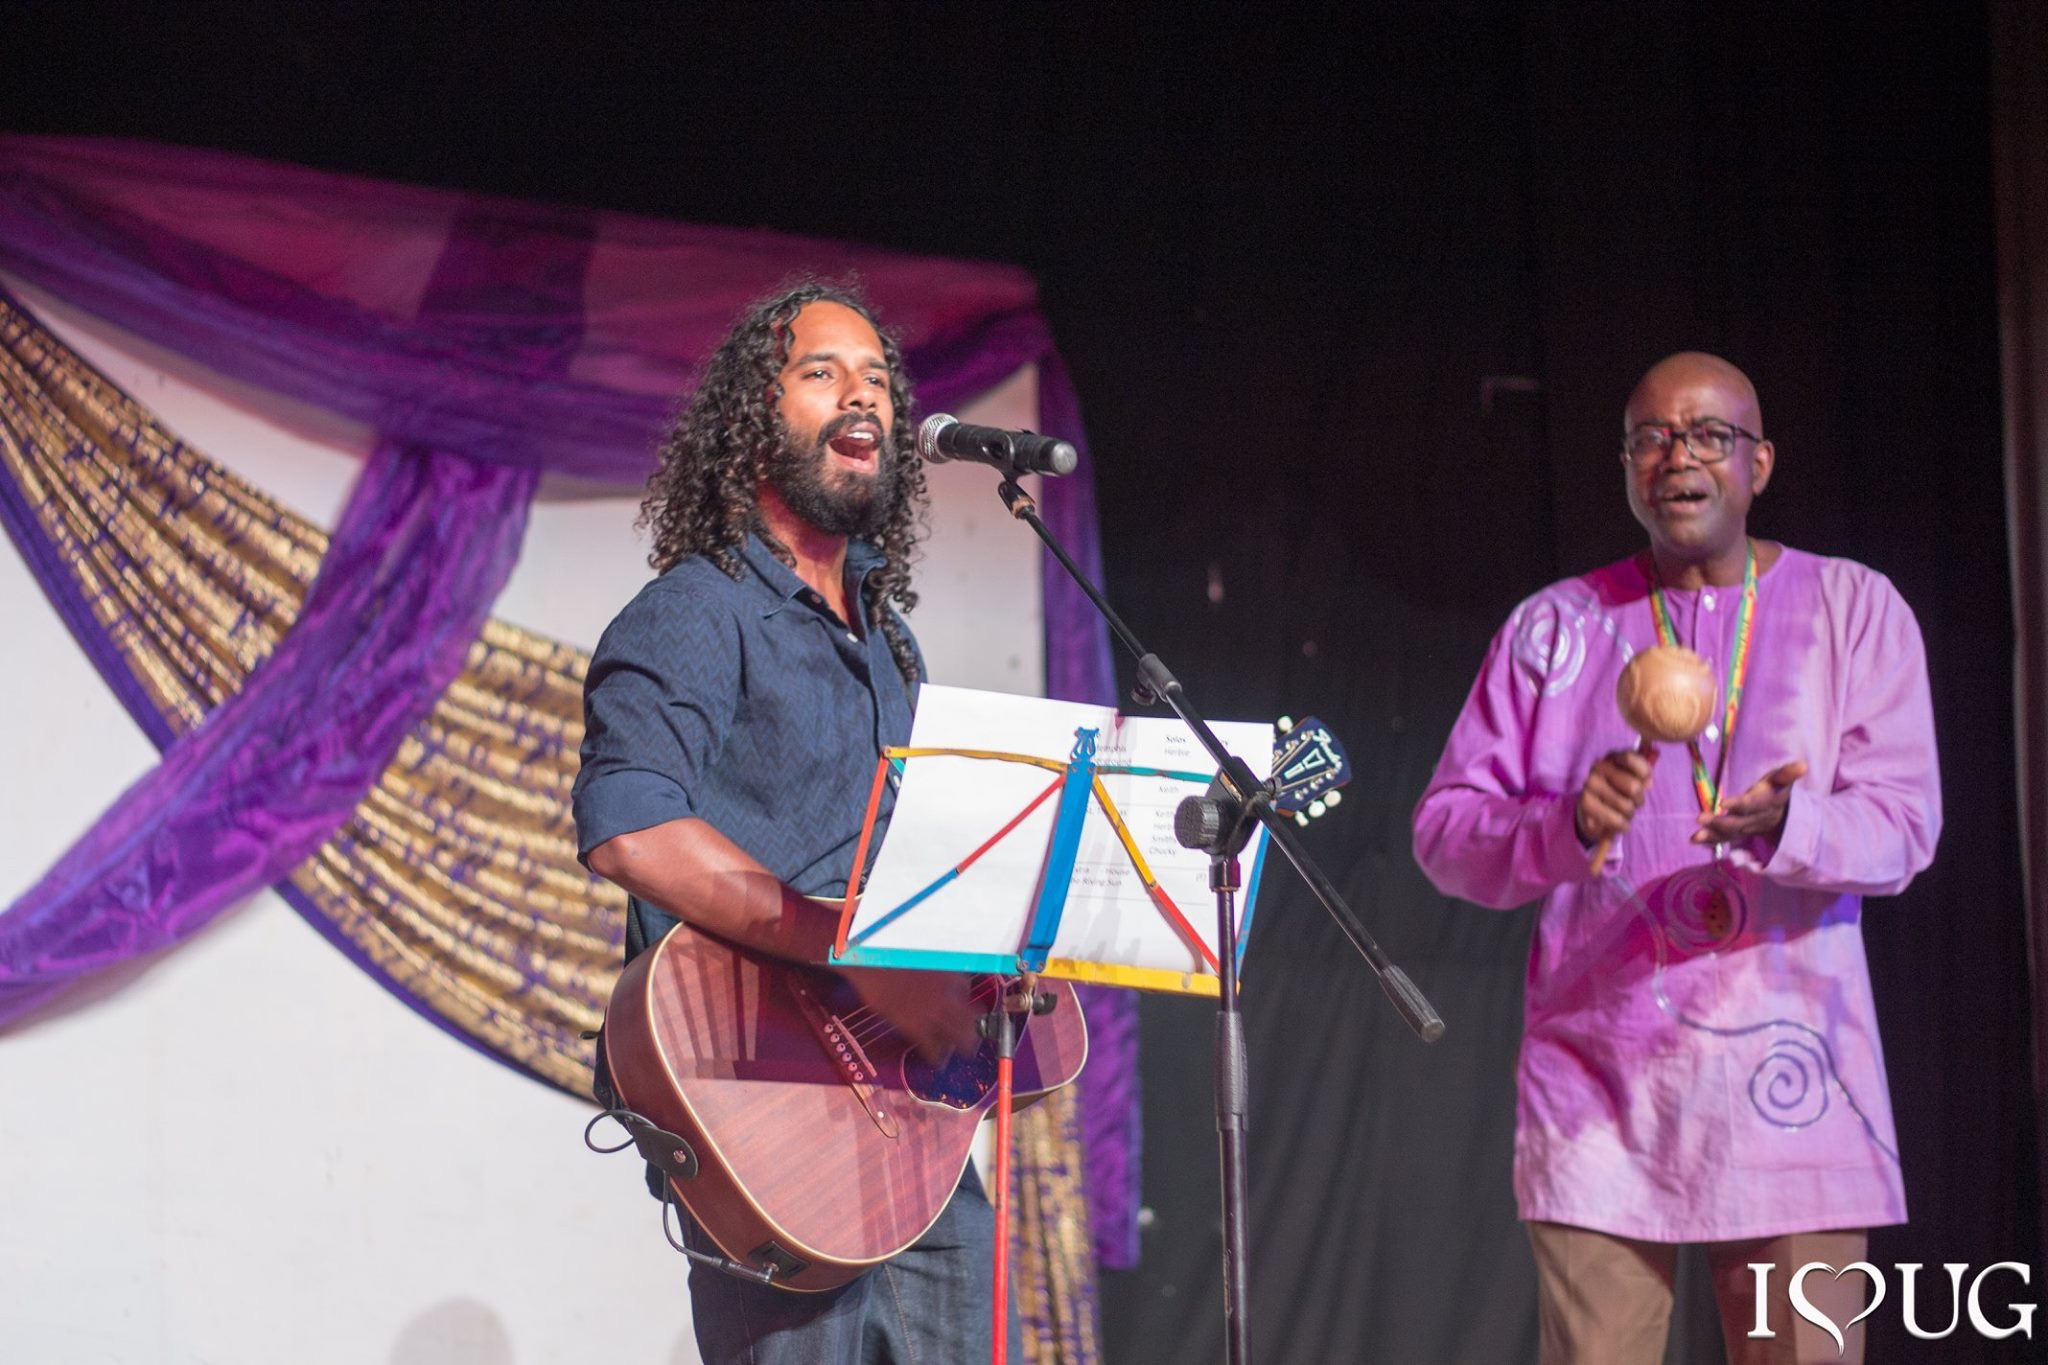 Performing with Legendary Guyanese Flautist - Keith Waithe